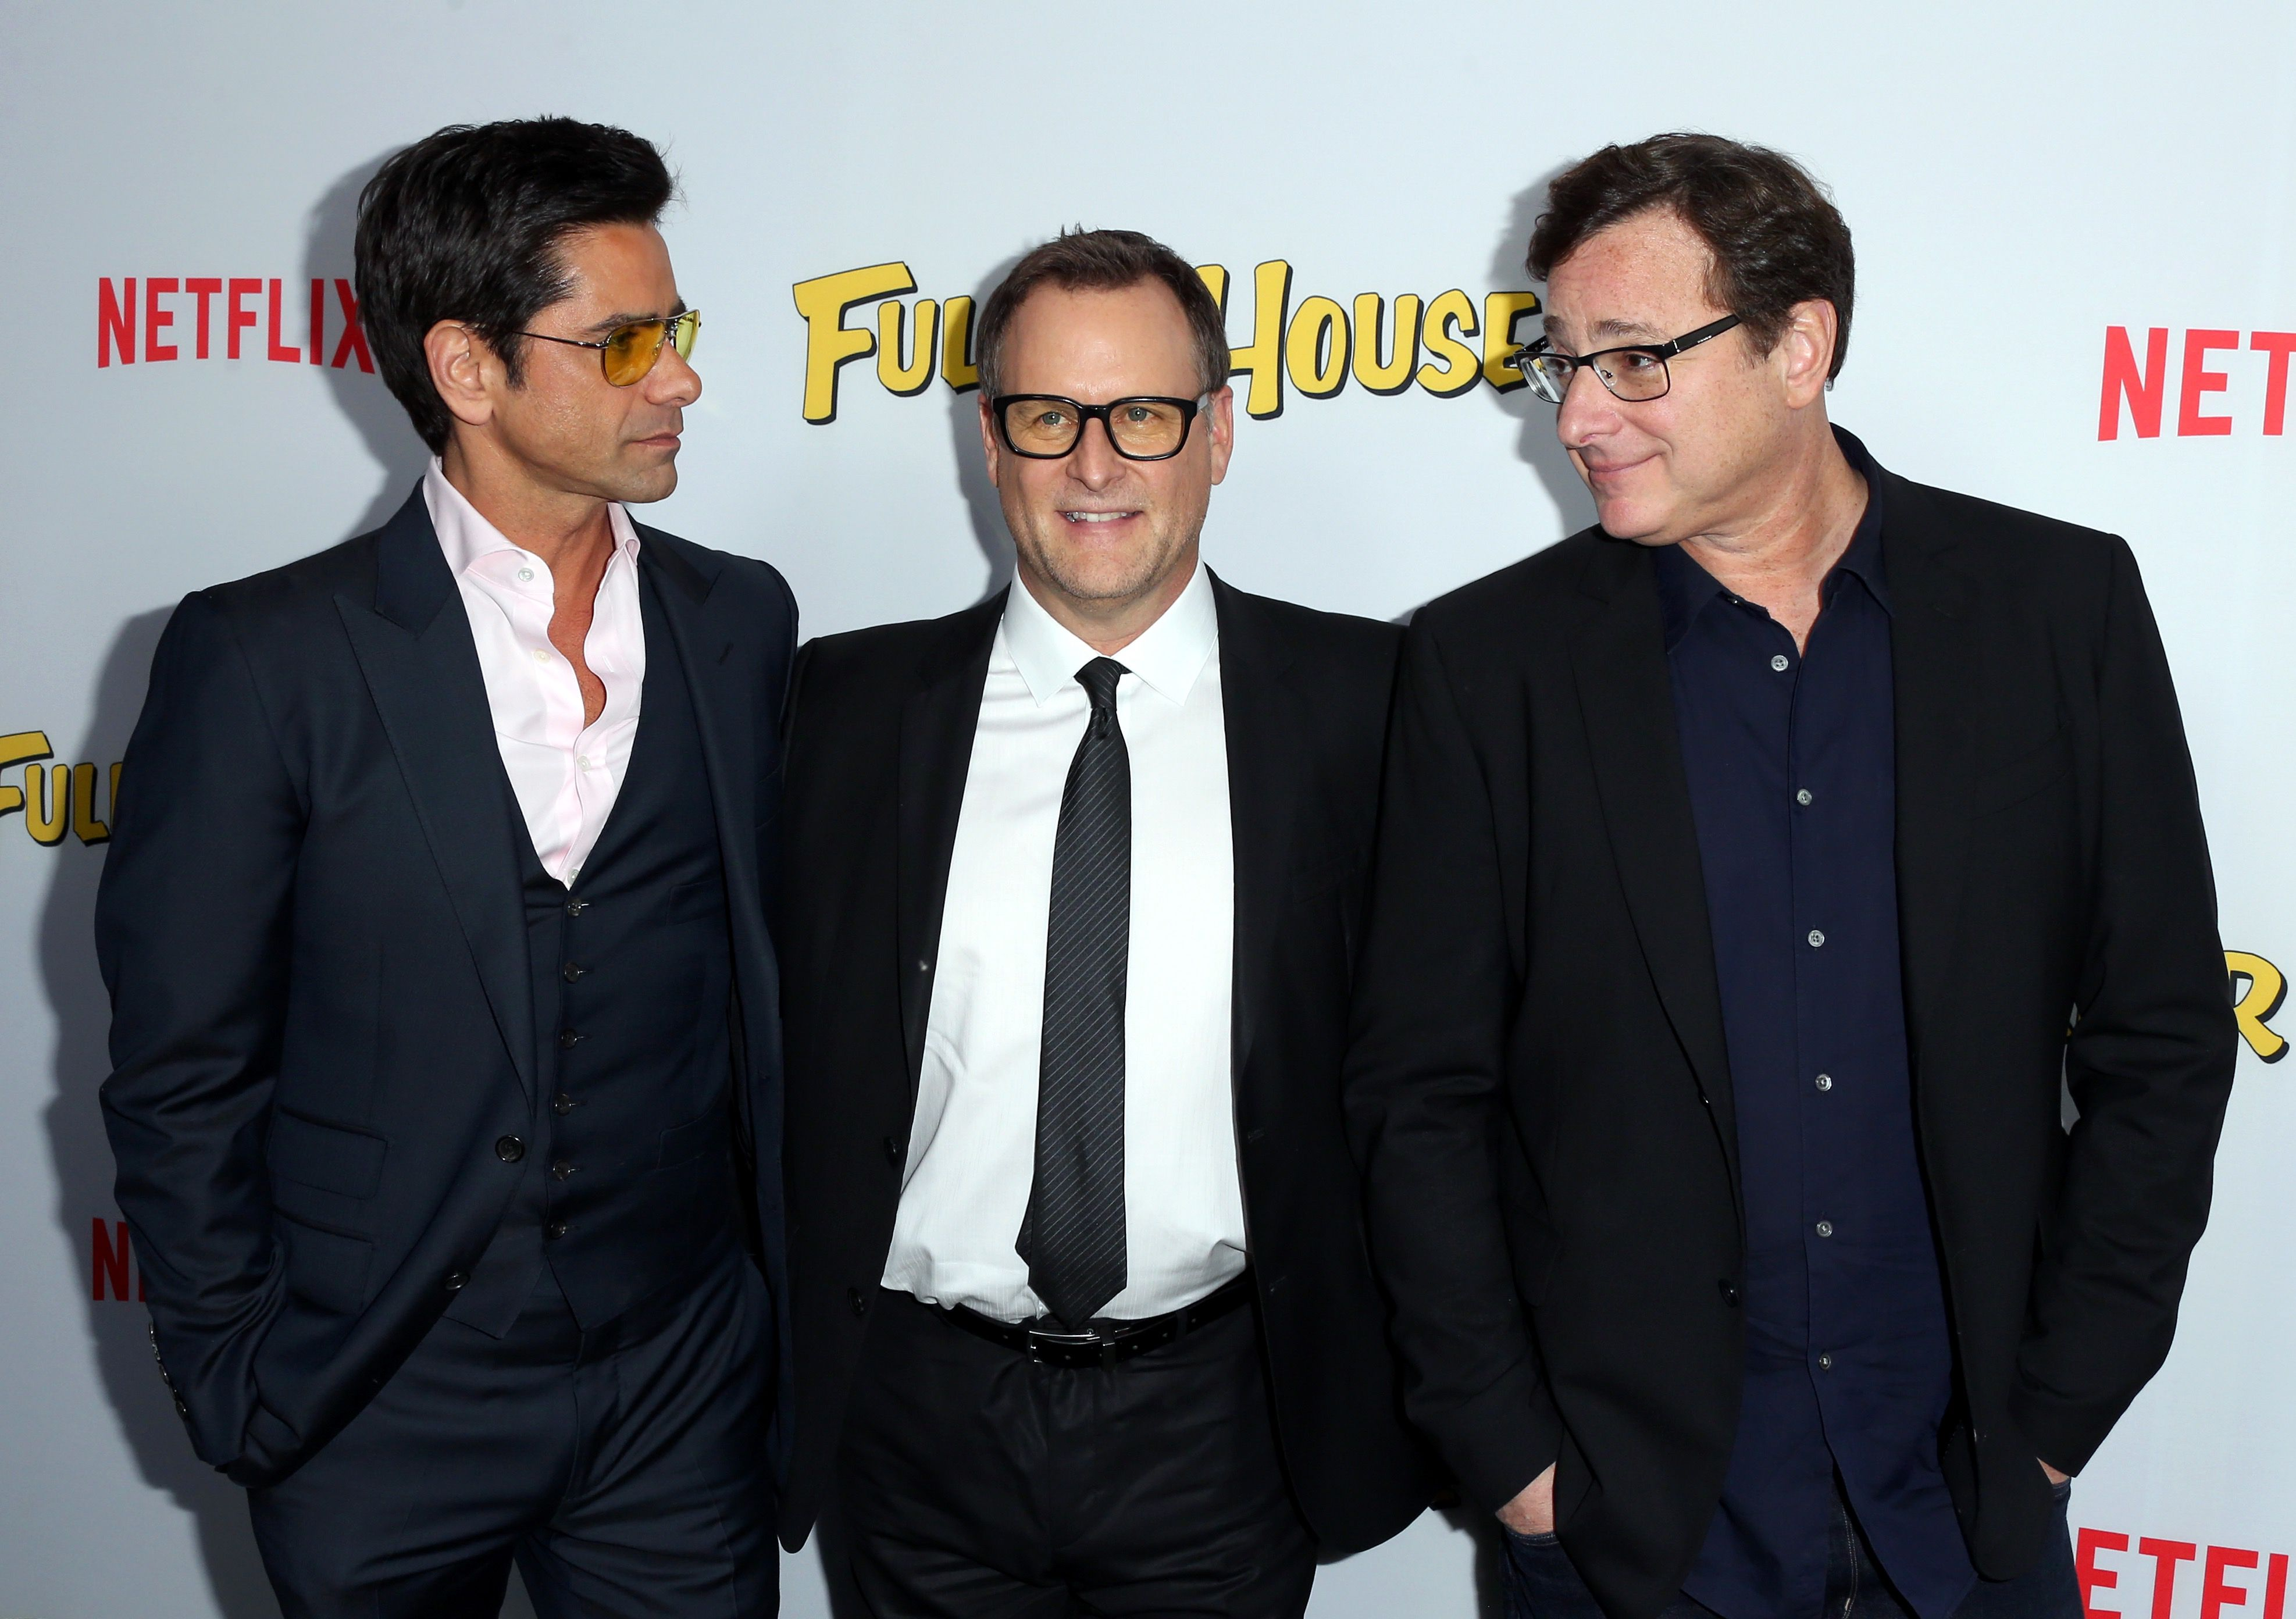 Actors John Stamos, Dave Coulier, and Bob Saget attend the premiere of Netflix's 'Fuller House.'